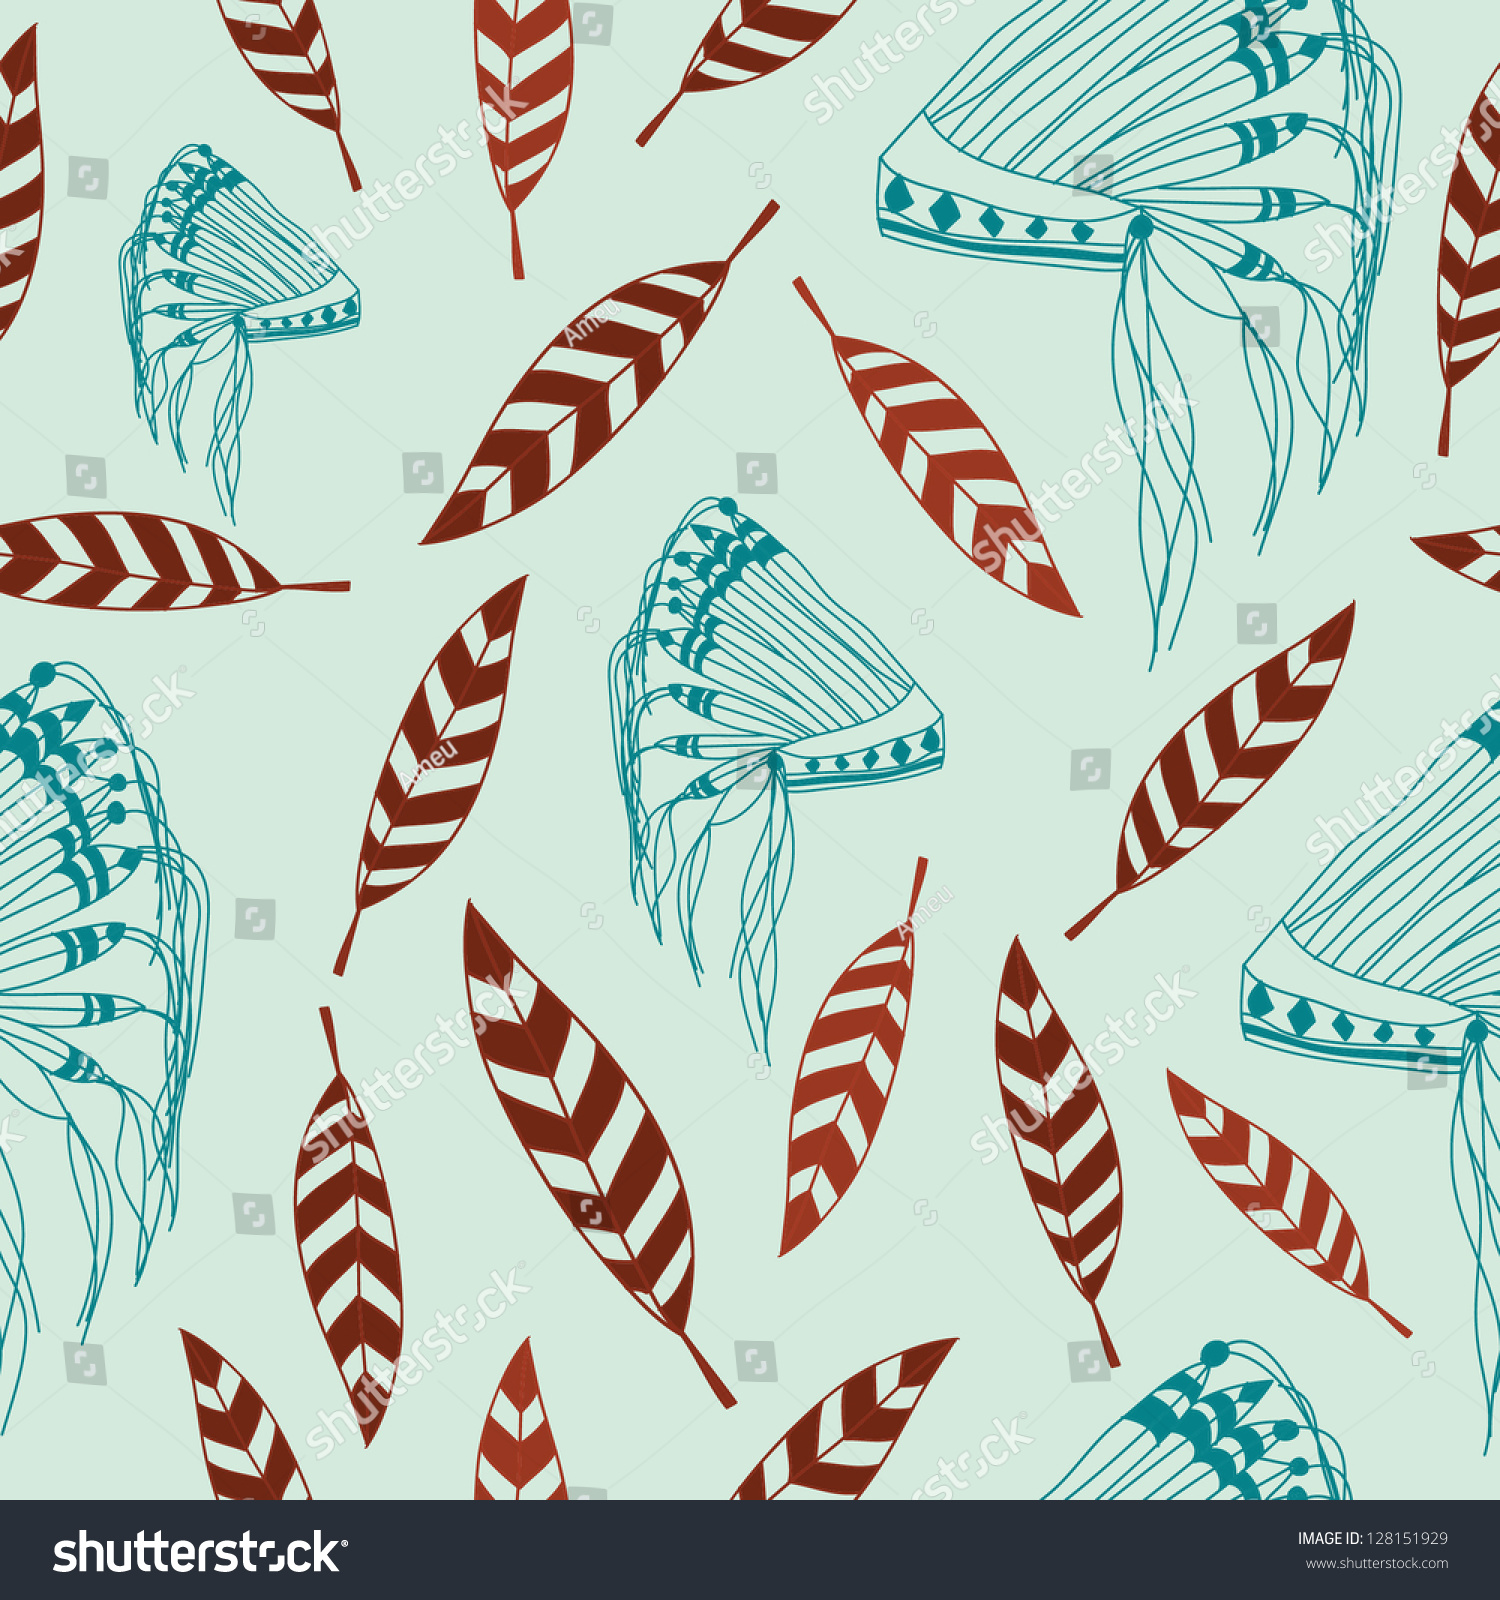 Native American Headdress And Feather Vector Illustration Can Be Used For Wallpaper Patterns